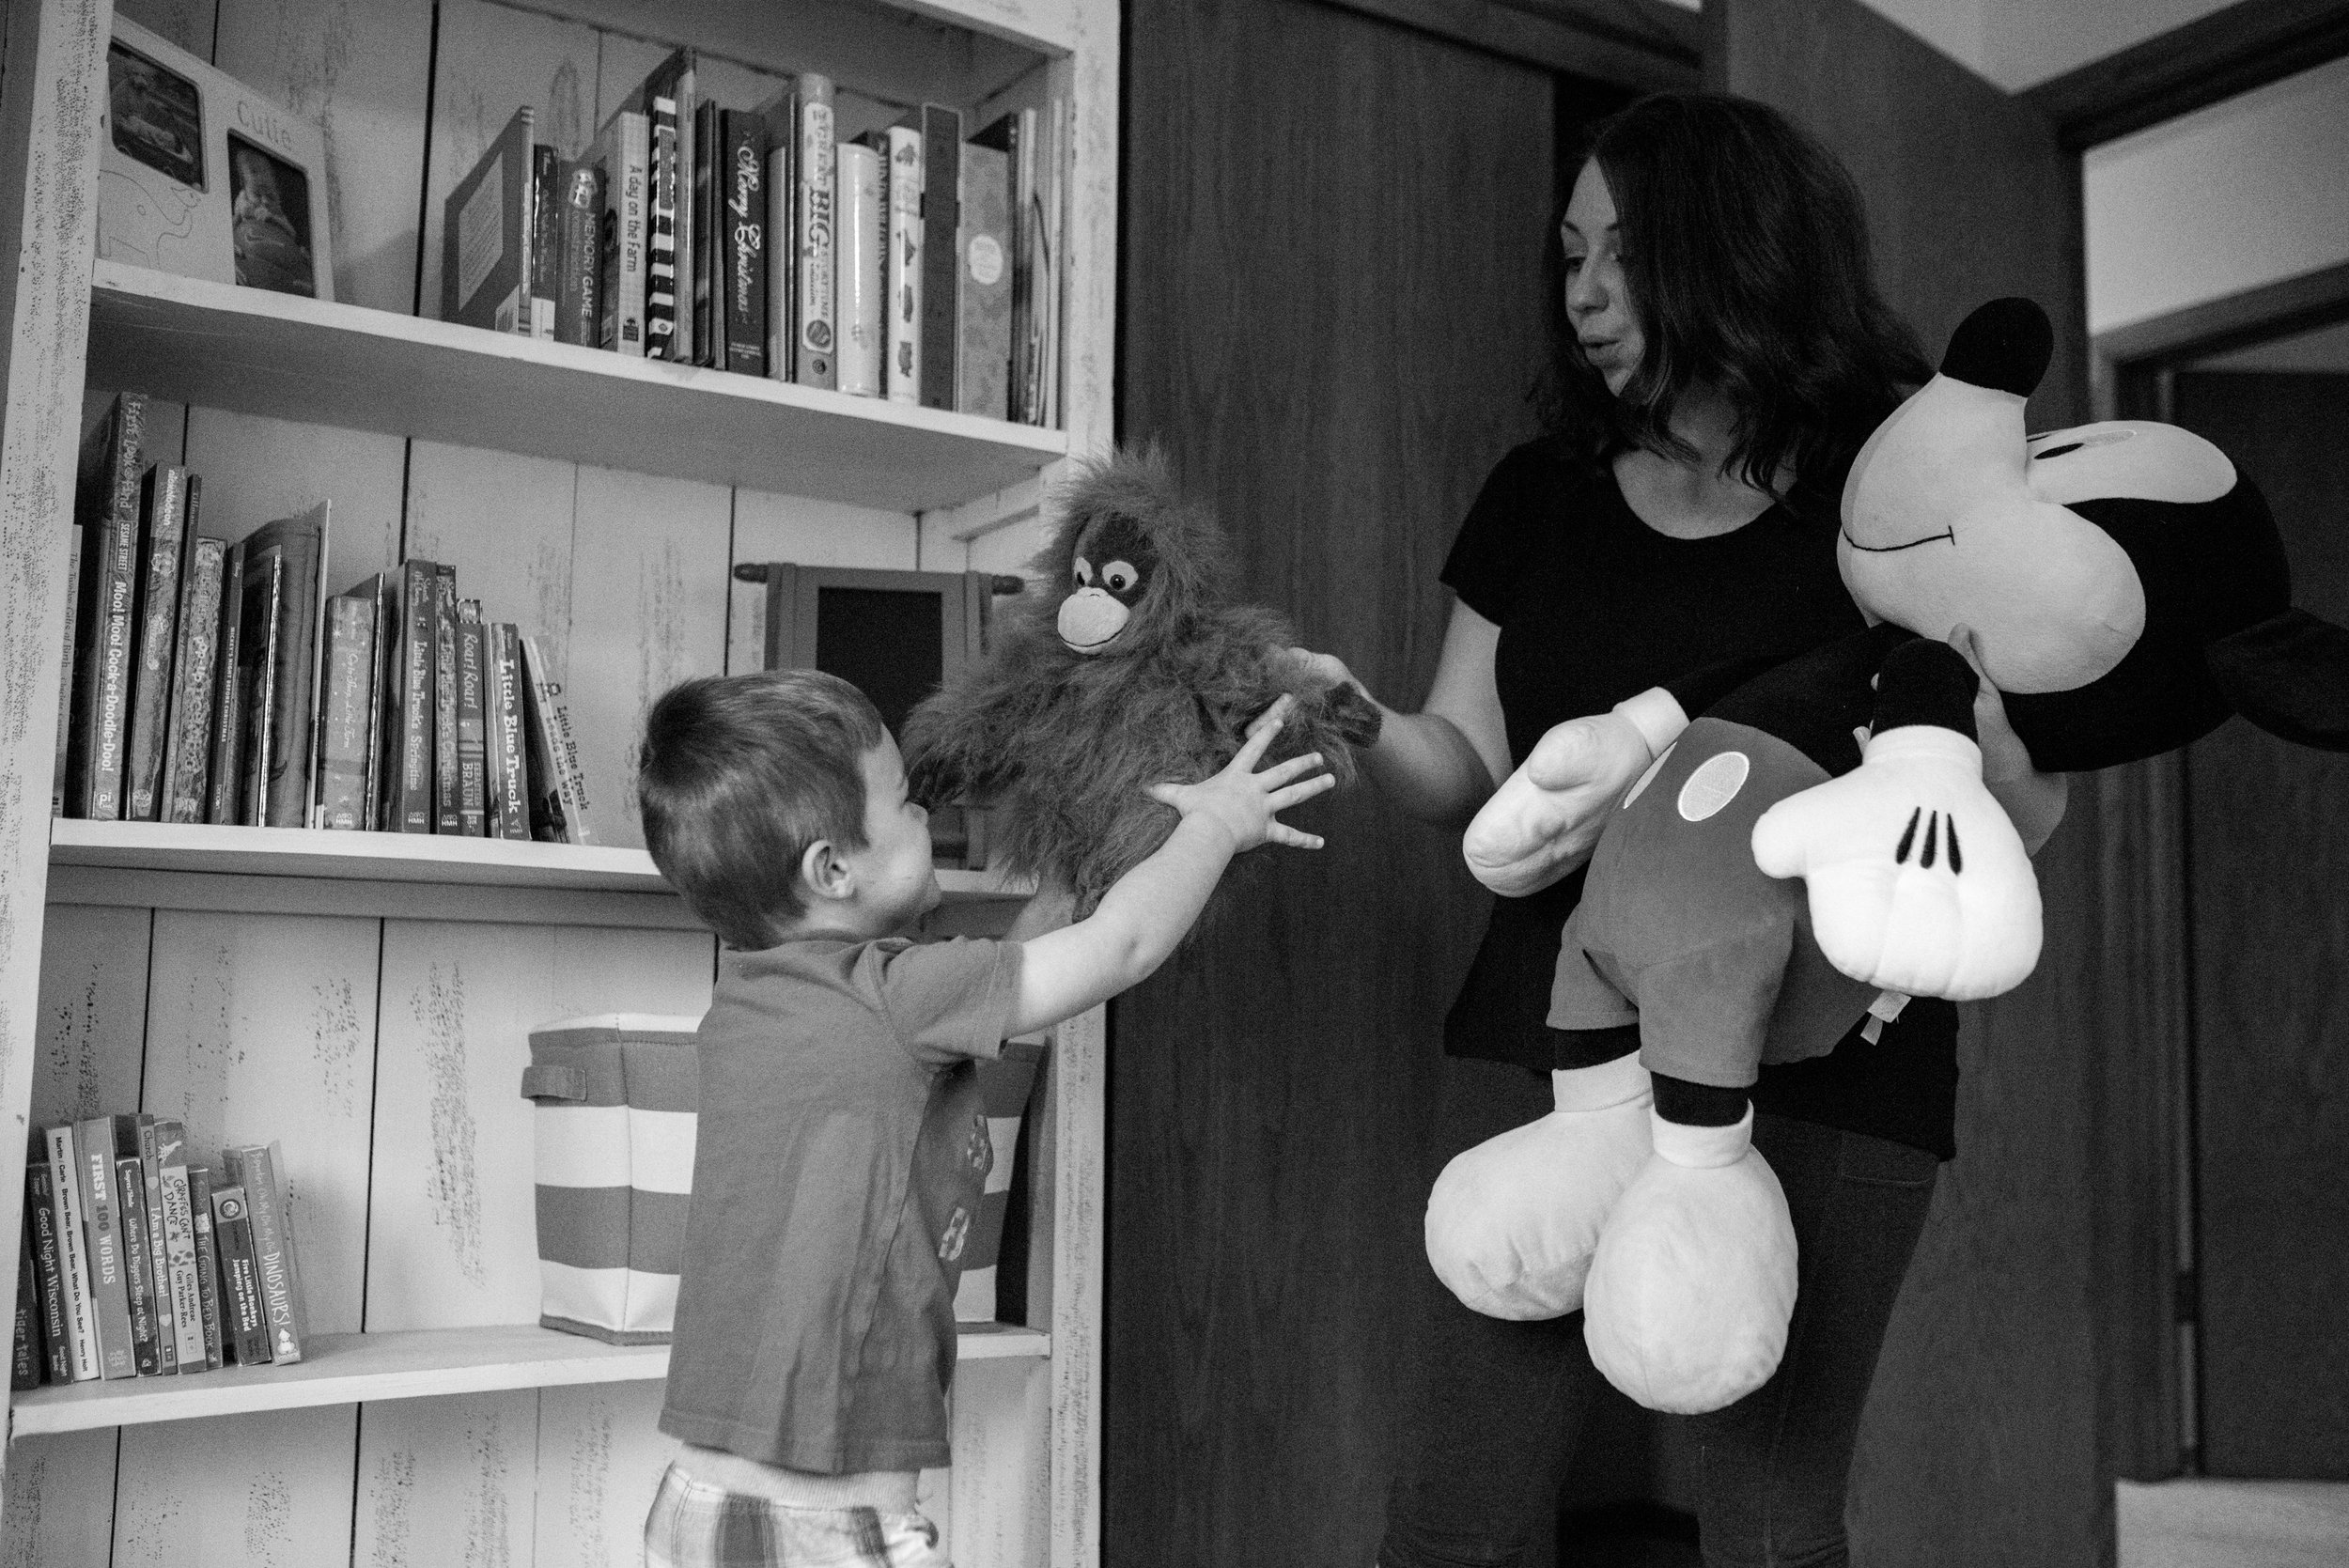 Mom handing son gorilla stuffed animal and holding Mickey Mouse stuffed animal